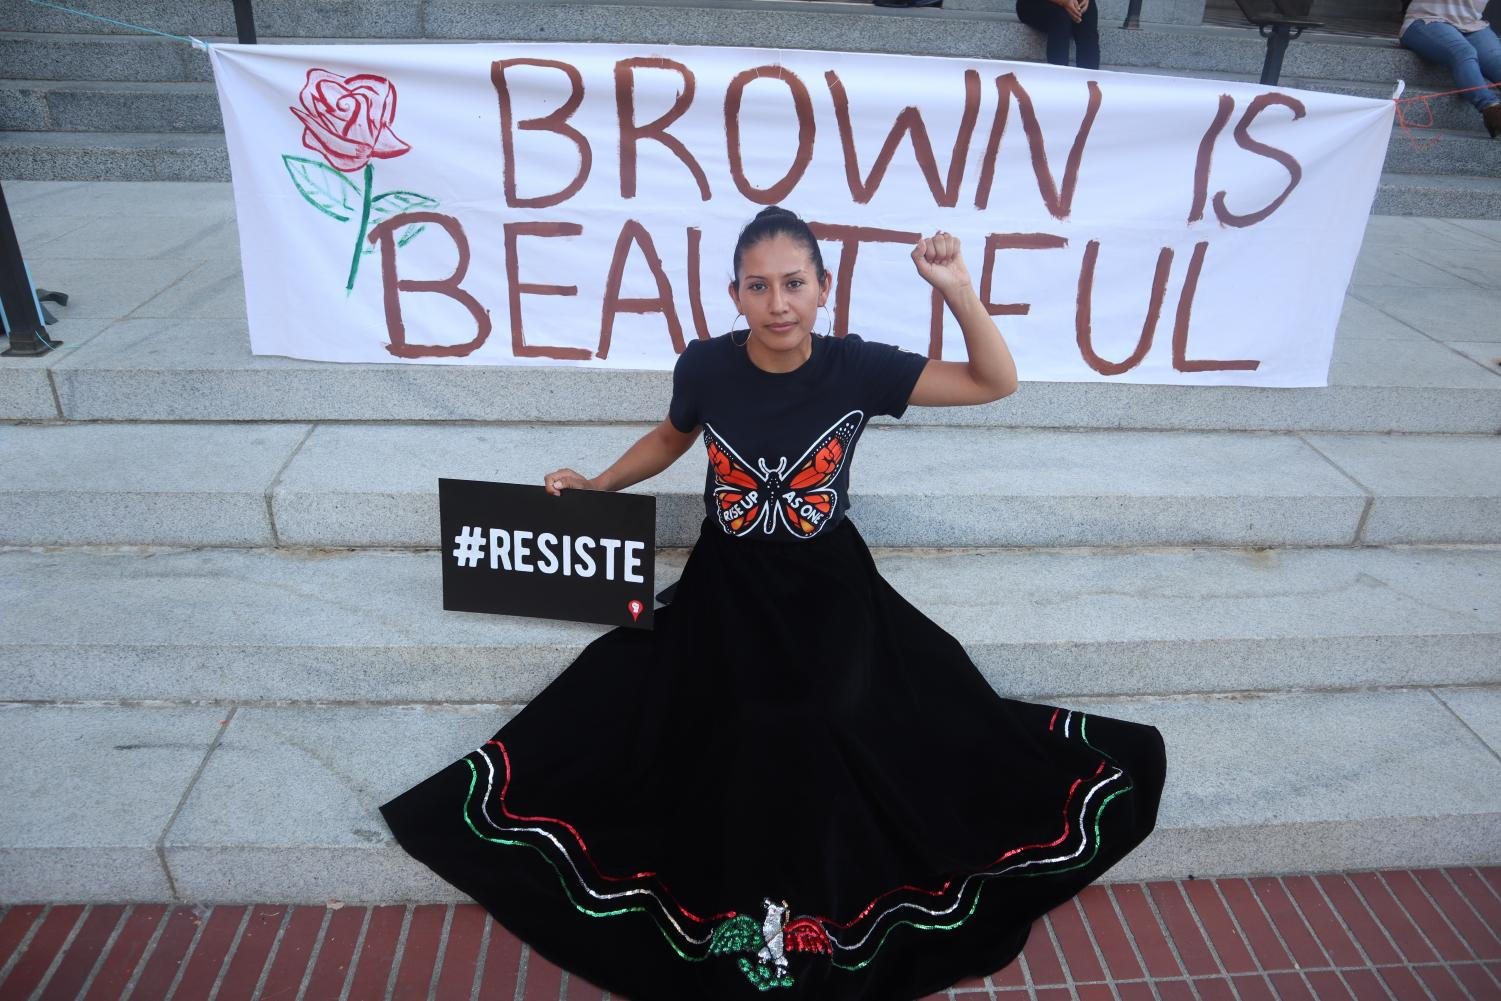 Alma+Lopez%2C+statewide+coordinator+of+Brown+Issues+poses+in+front+of+the+sign+%22Brown+is+Beautiful%22+that+she+painted+along+with+a+political+sign+saying%2C+%22Resist%22+in+Spanish+on+the+California+State+Capitol+steps+on+Tuesday%2C+Sept.+3.